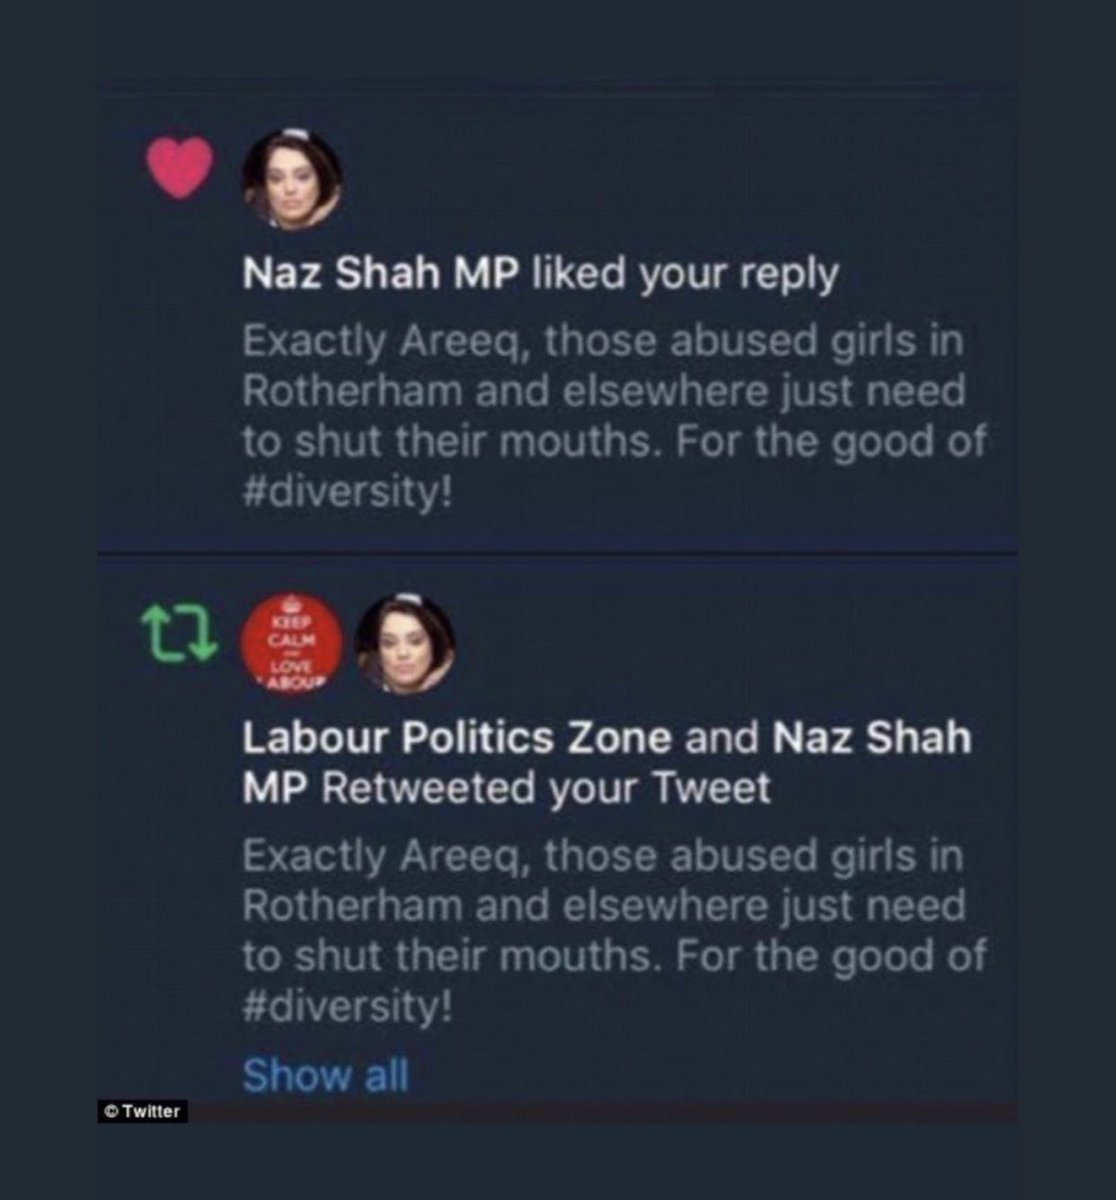 @NazShahBfd Massive hypocrite alert. Shah say silence is not an option. Does that only apply to non whites shah